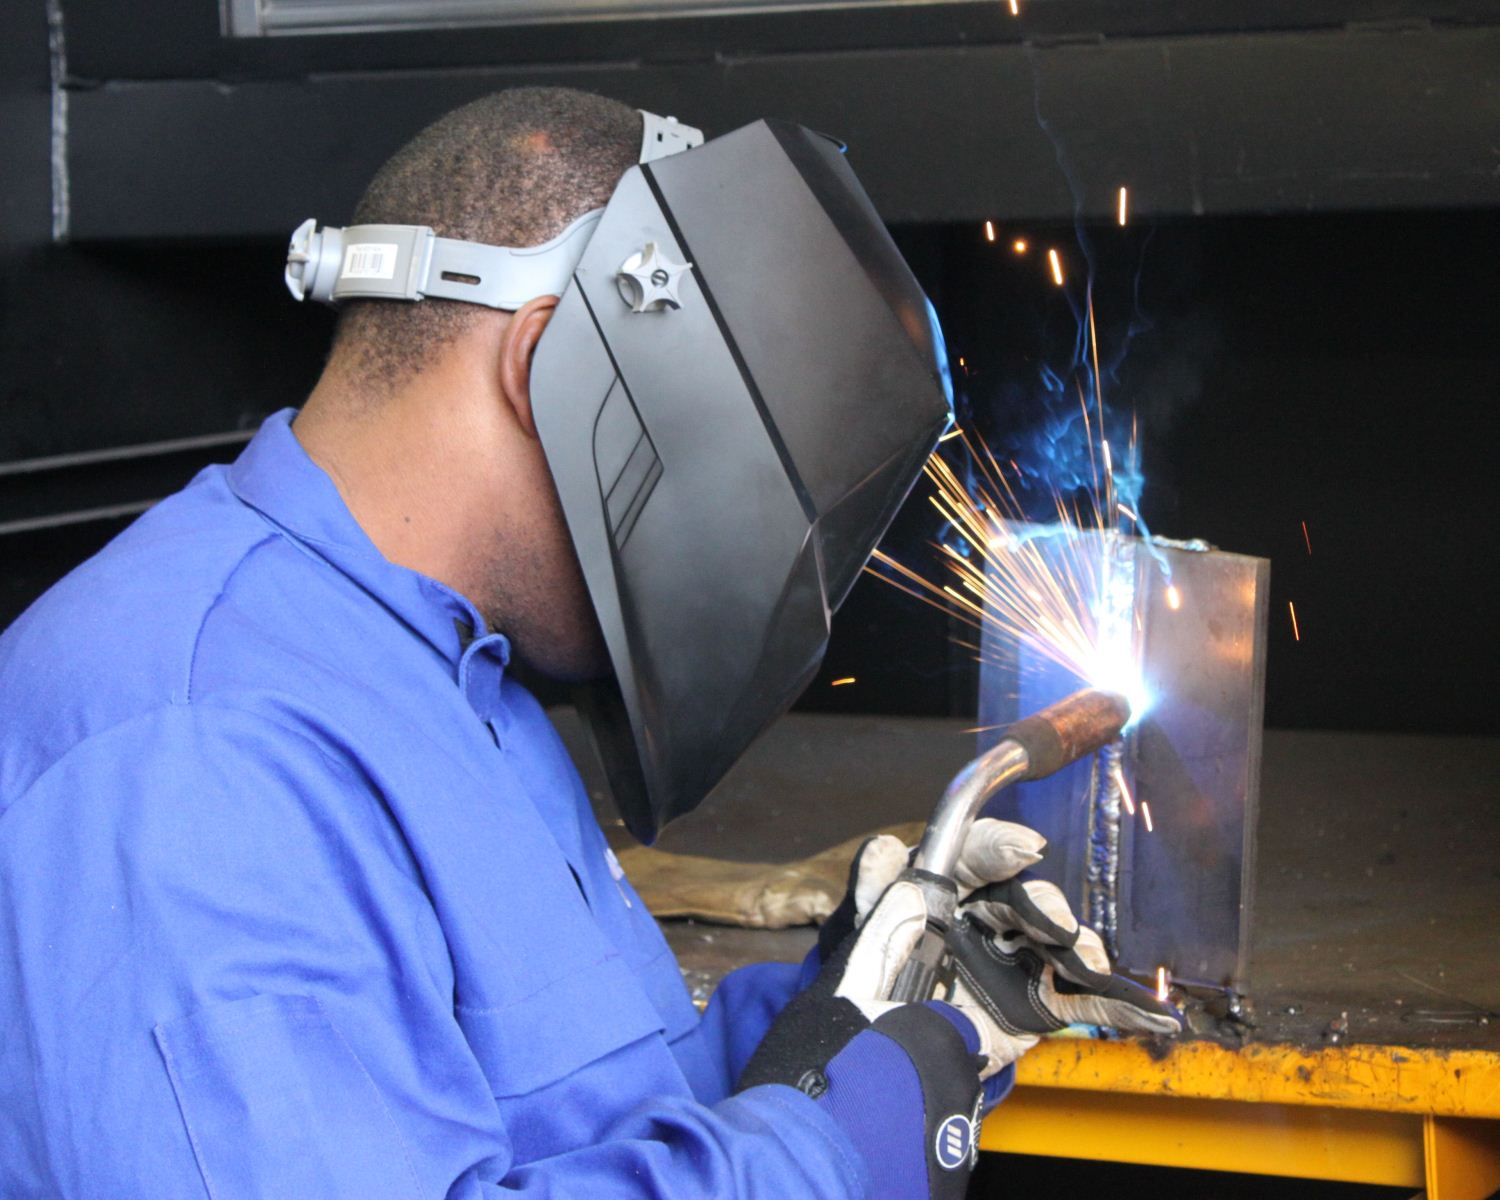 Have grade 12? NOV, a big oil rig company, has Welder jobs / learnerships for youth with Grade 12 for 2018